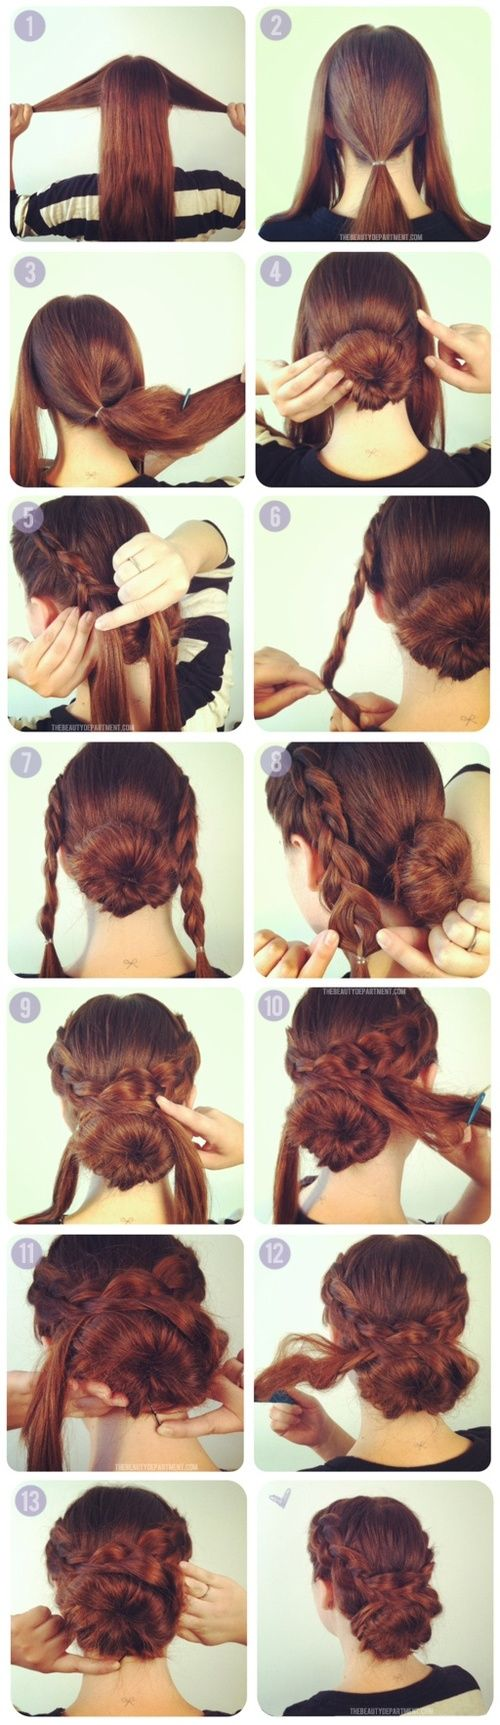 Hairstyles Of The Regency To Victorian Braided Cross Bun Updo I Love This Hair Styles Long Hair Styles Cool Hairstyles